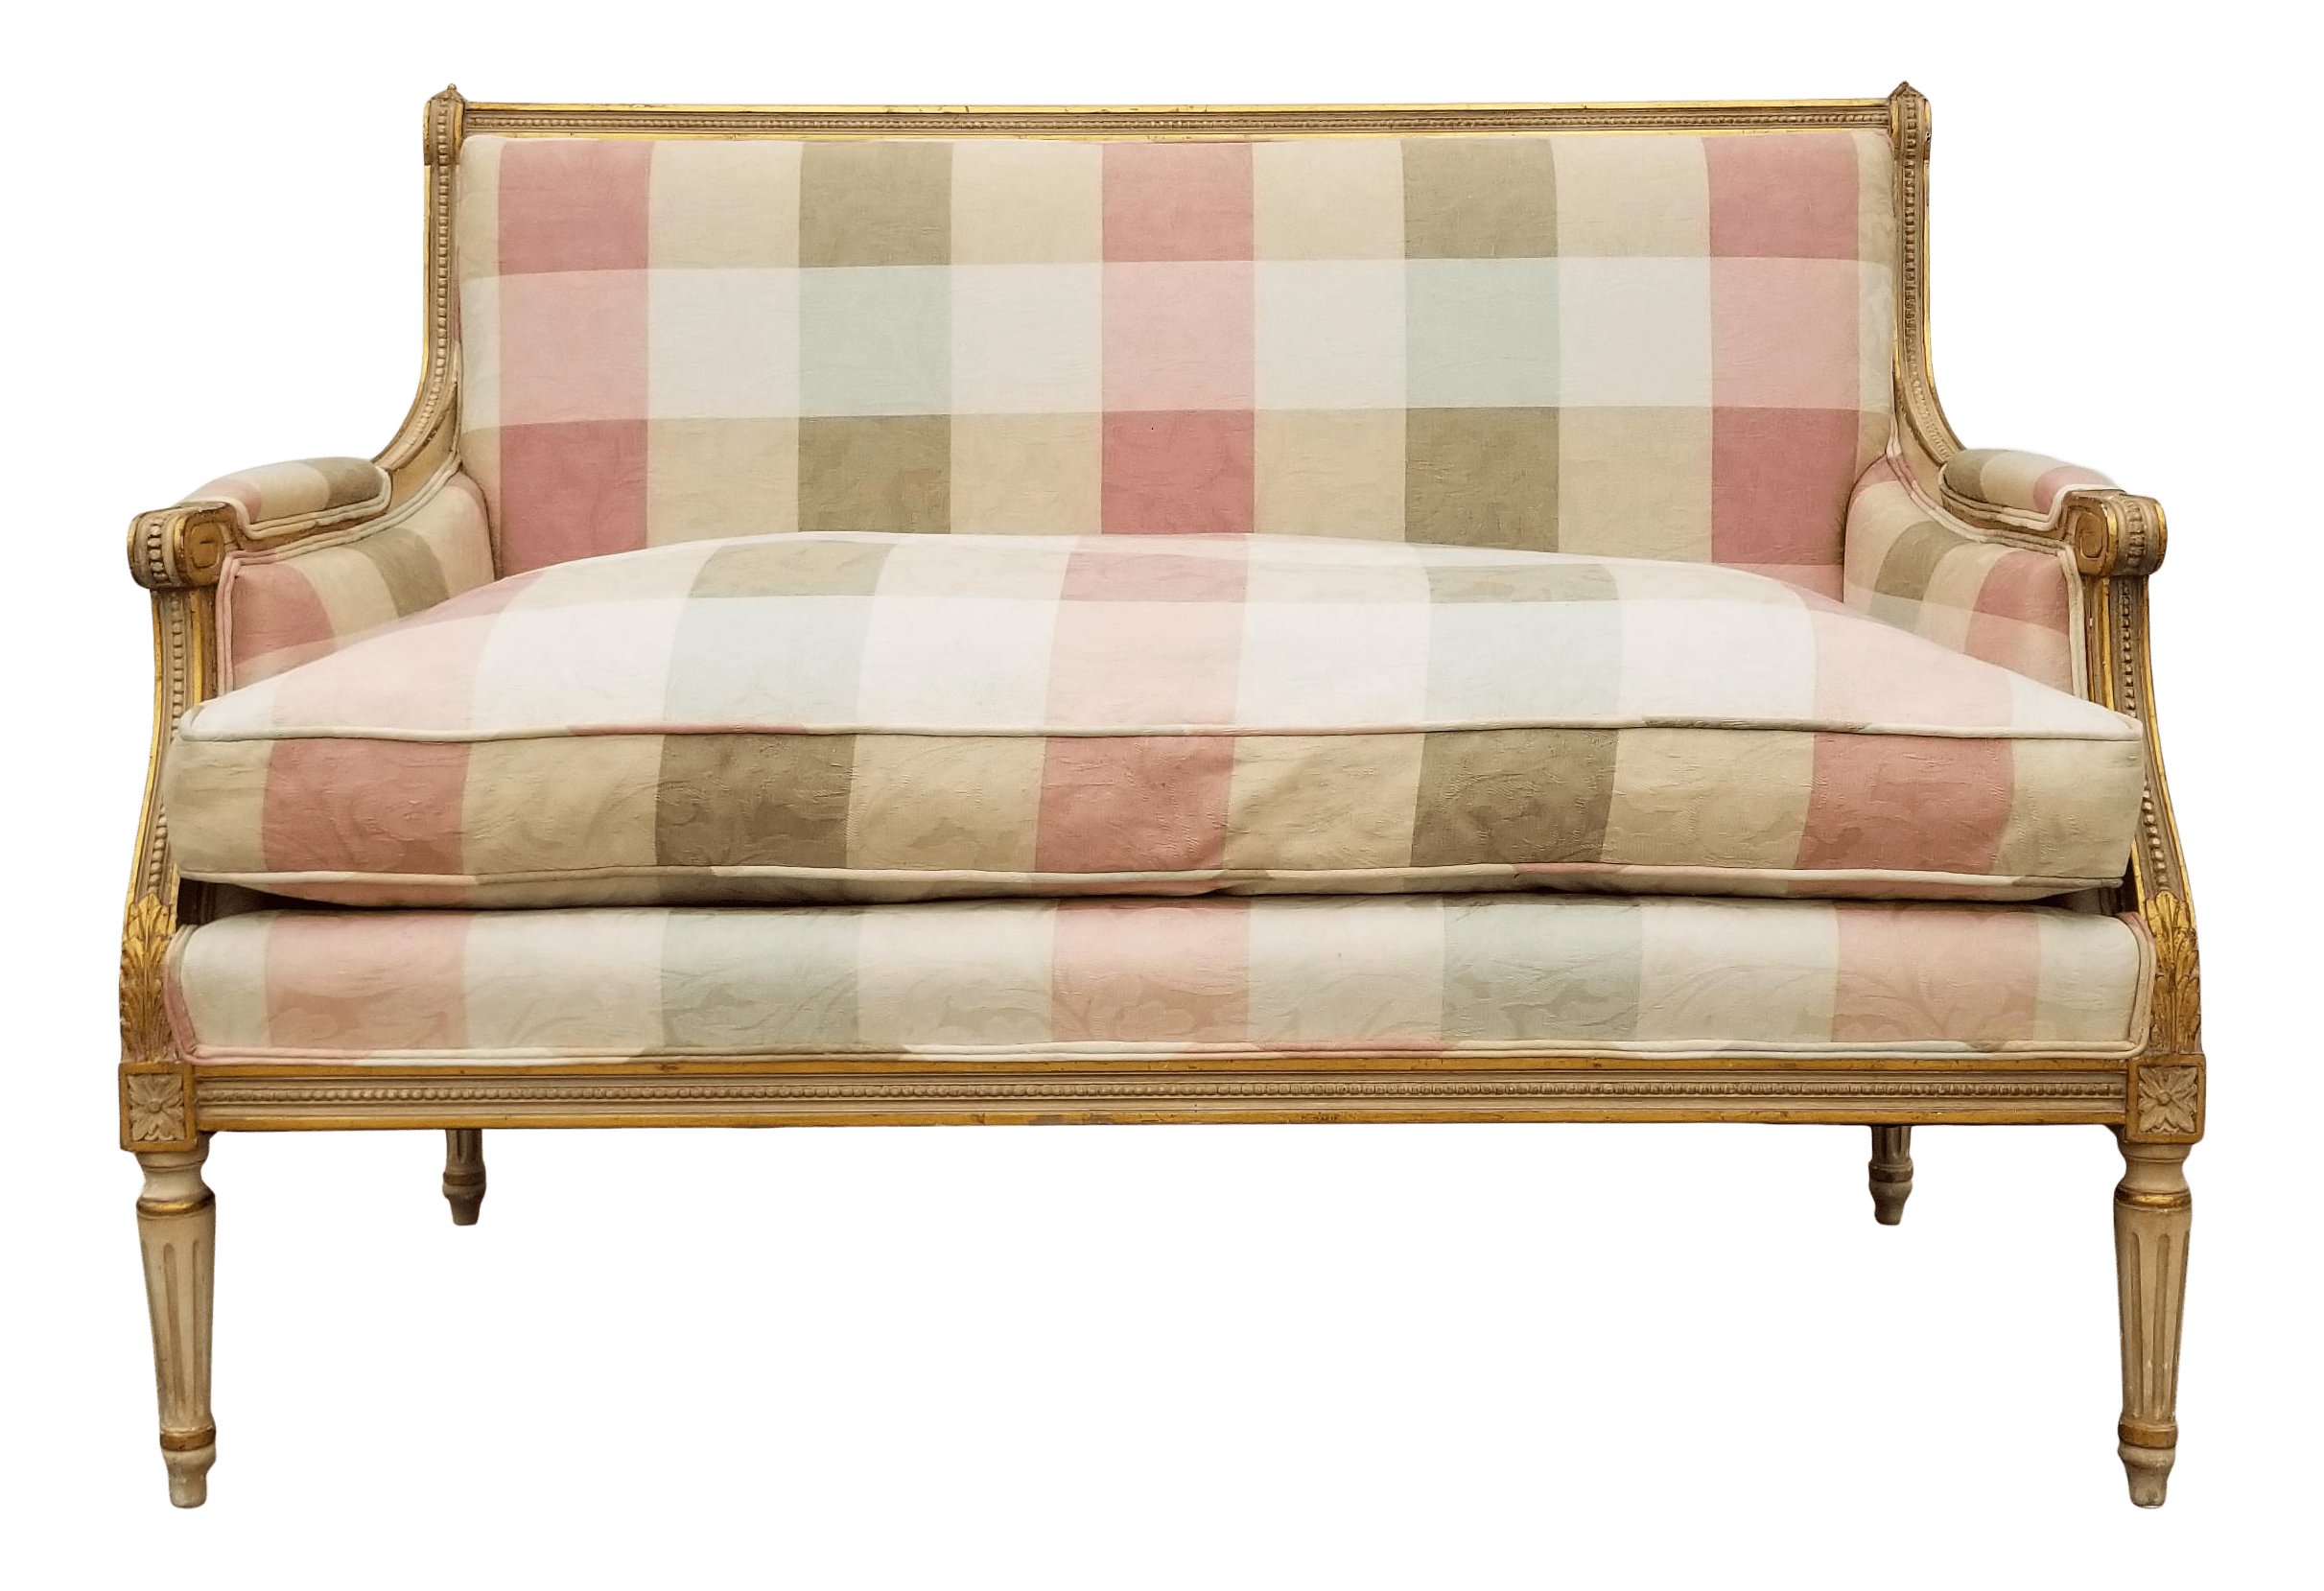 Sofa Vintage A Vendre Gently Used Vintage Louis Xvi Furniture For Sale At Chairish